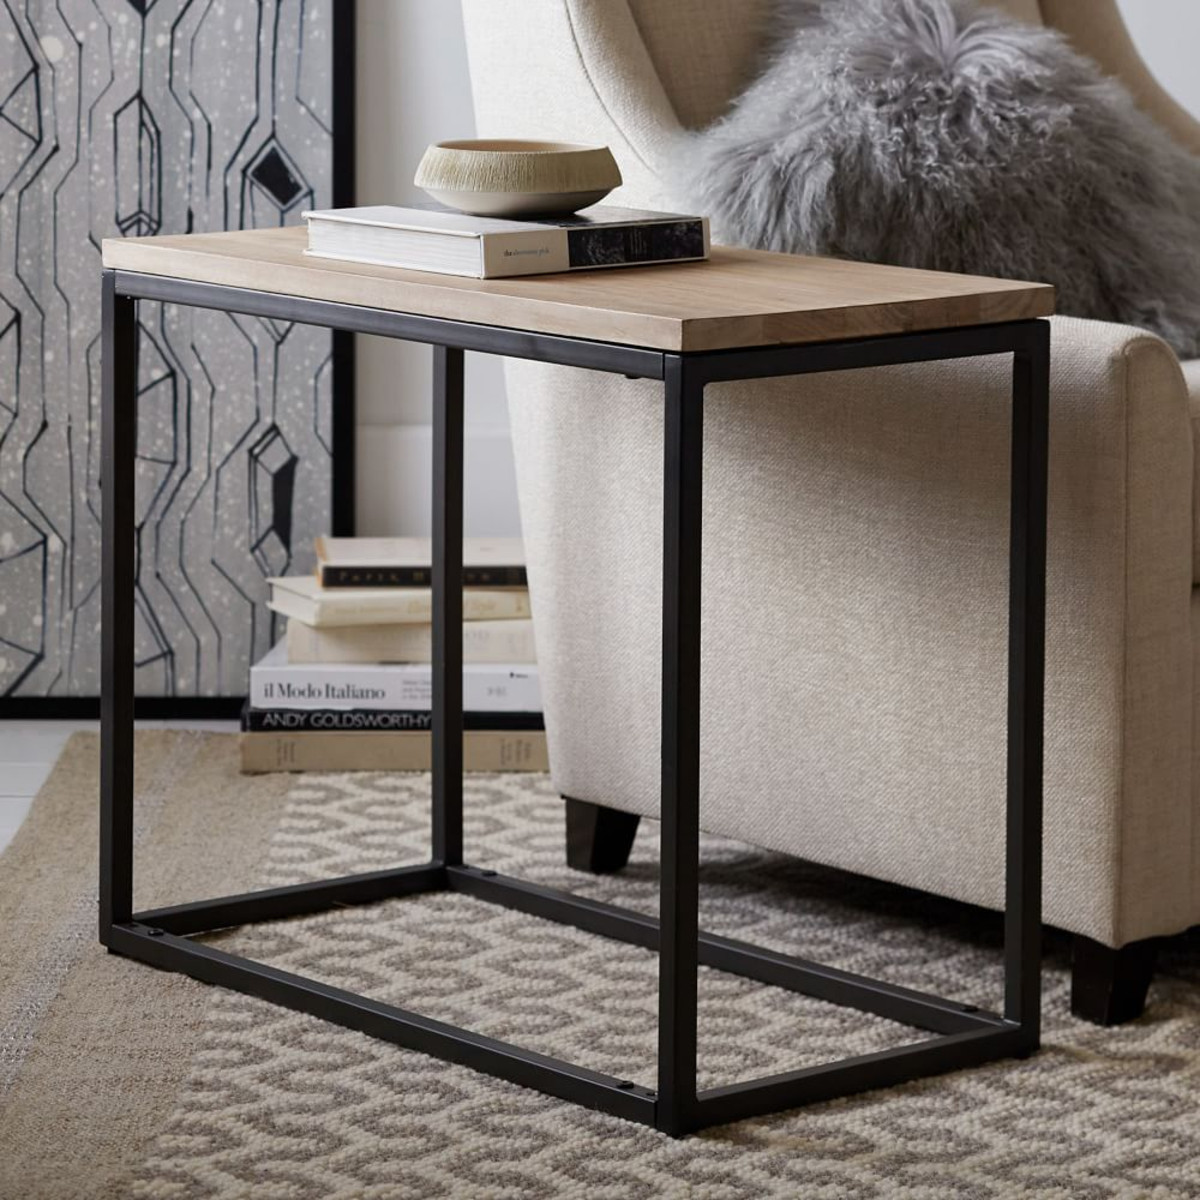 distinguished glass round side tables thin coffee together with compelling table narrow many design can fulfill your small rectangular accent bodacious living room pretty bedside